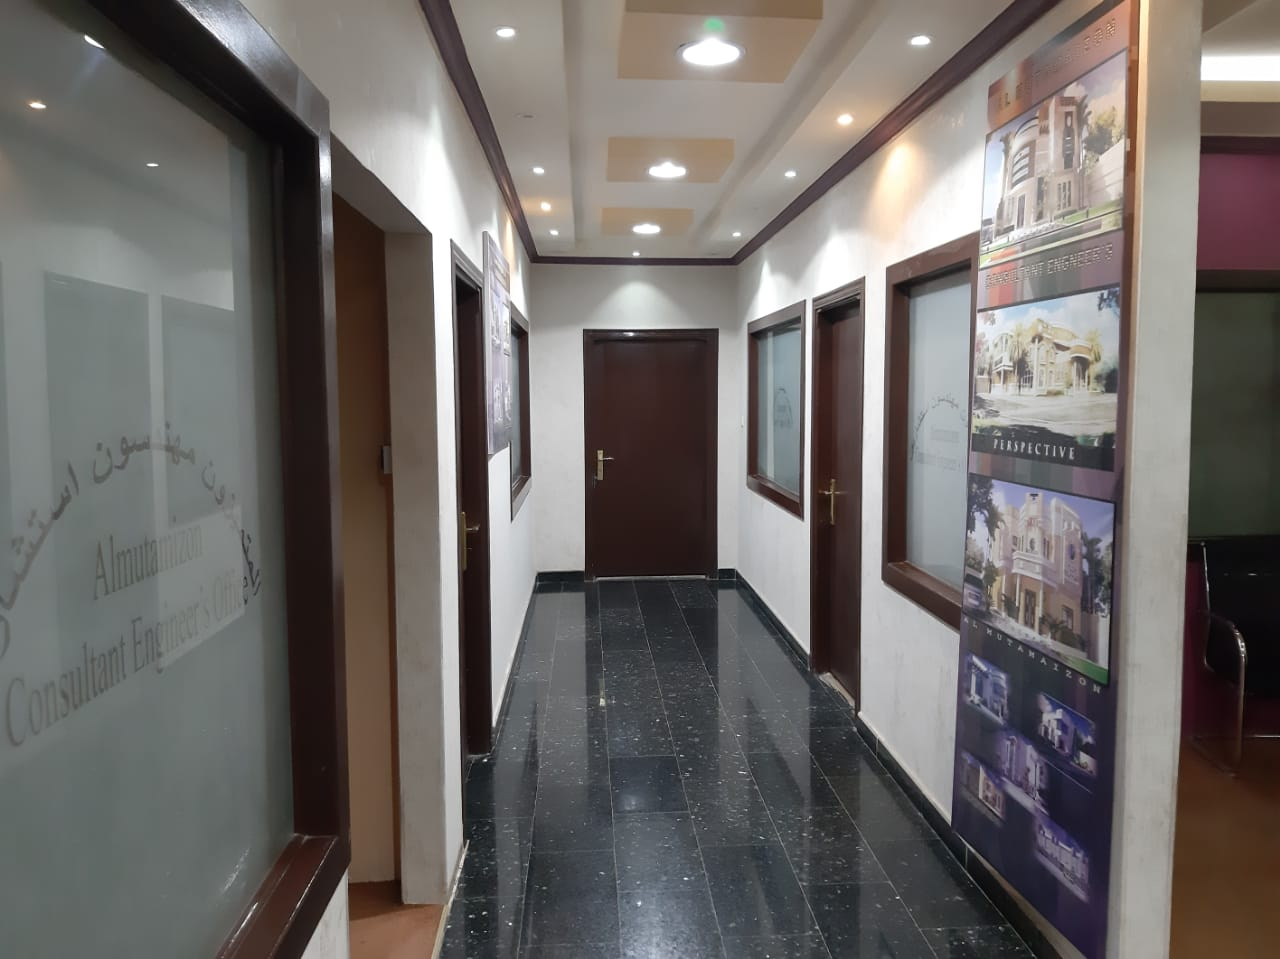 Our office photos